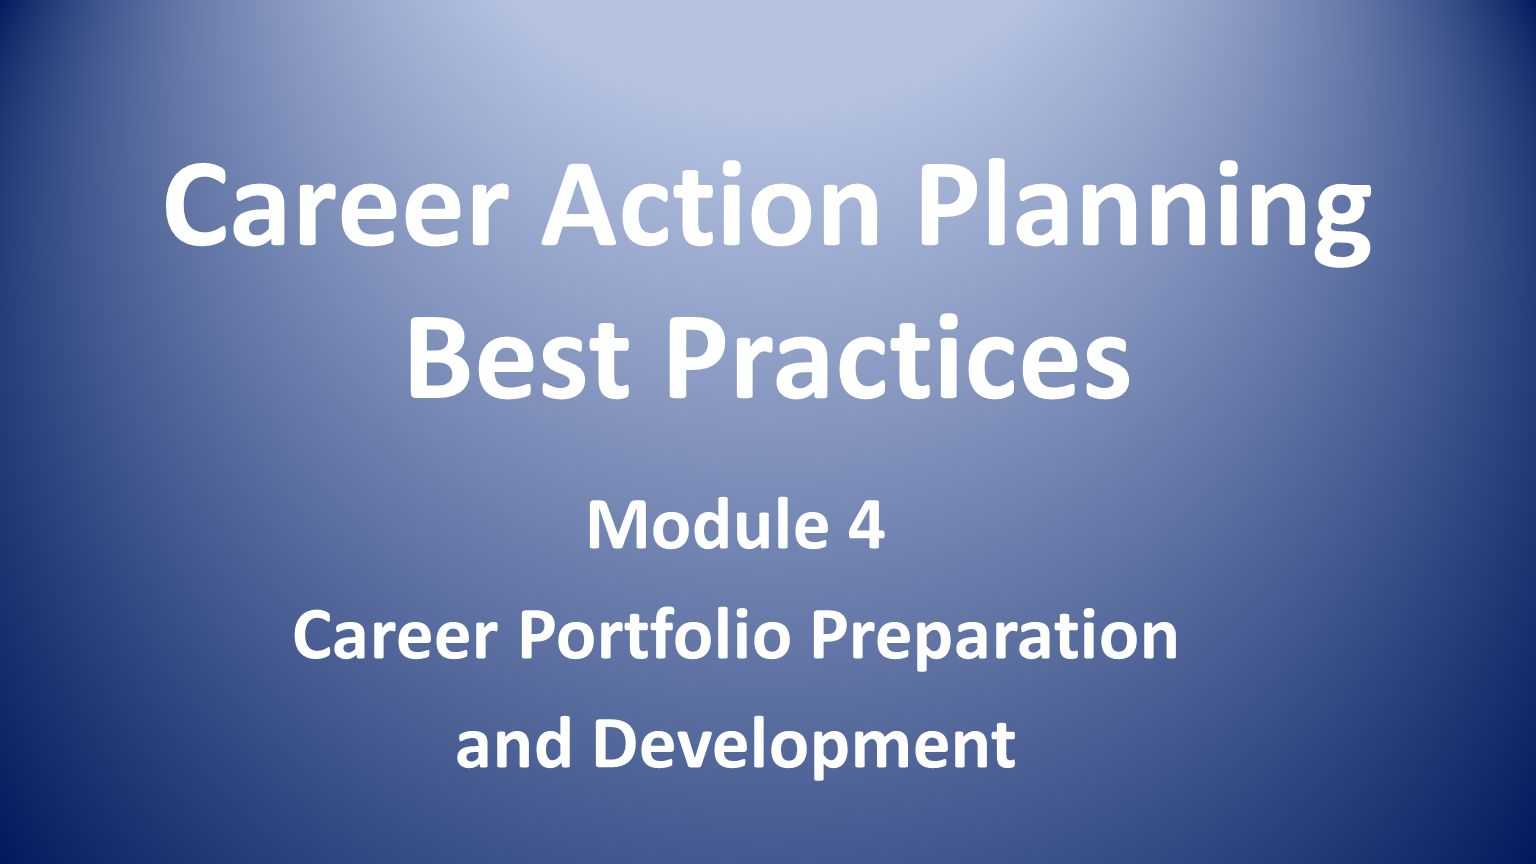 Career Action Planning Best Practices Module 4 Career Portfolio Preparation and Development